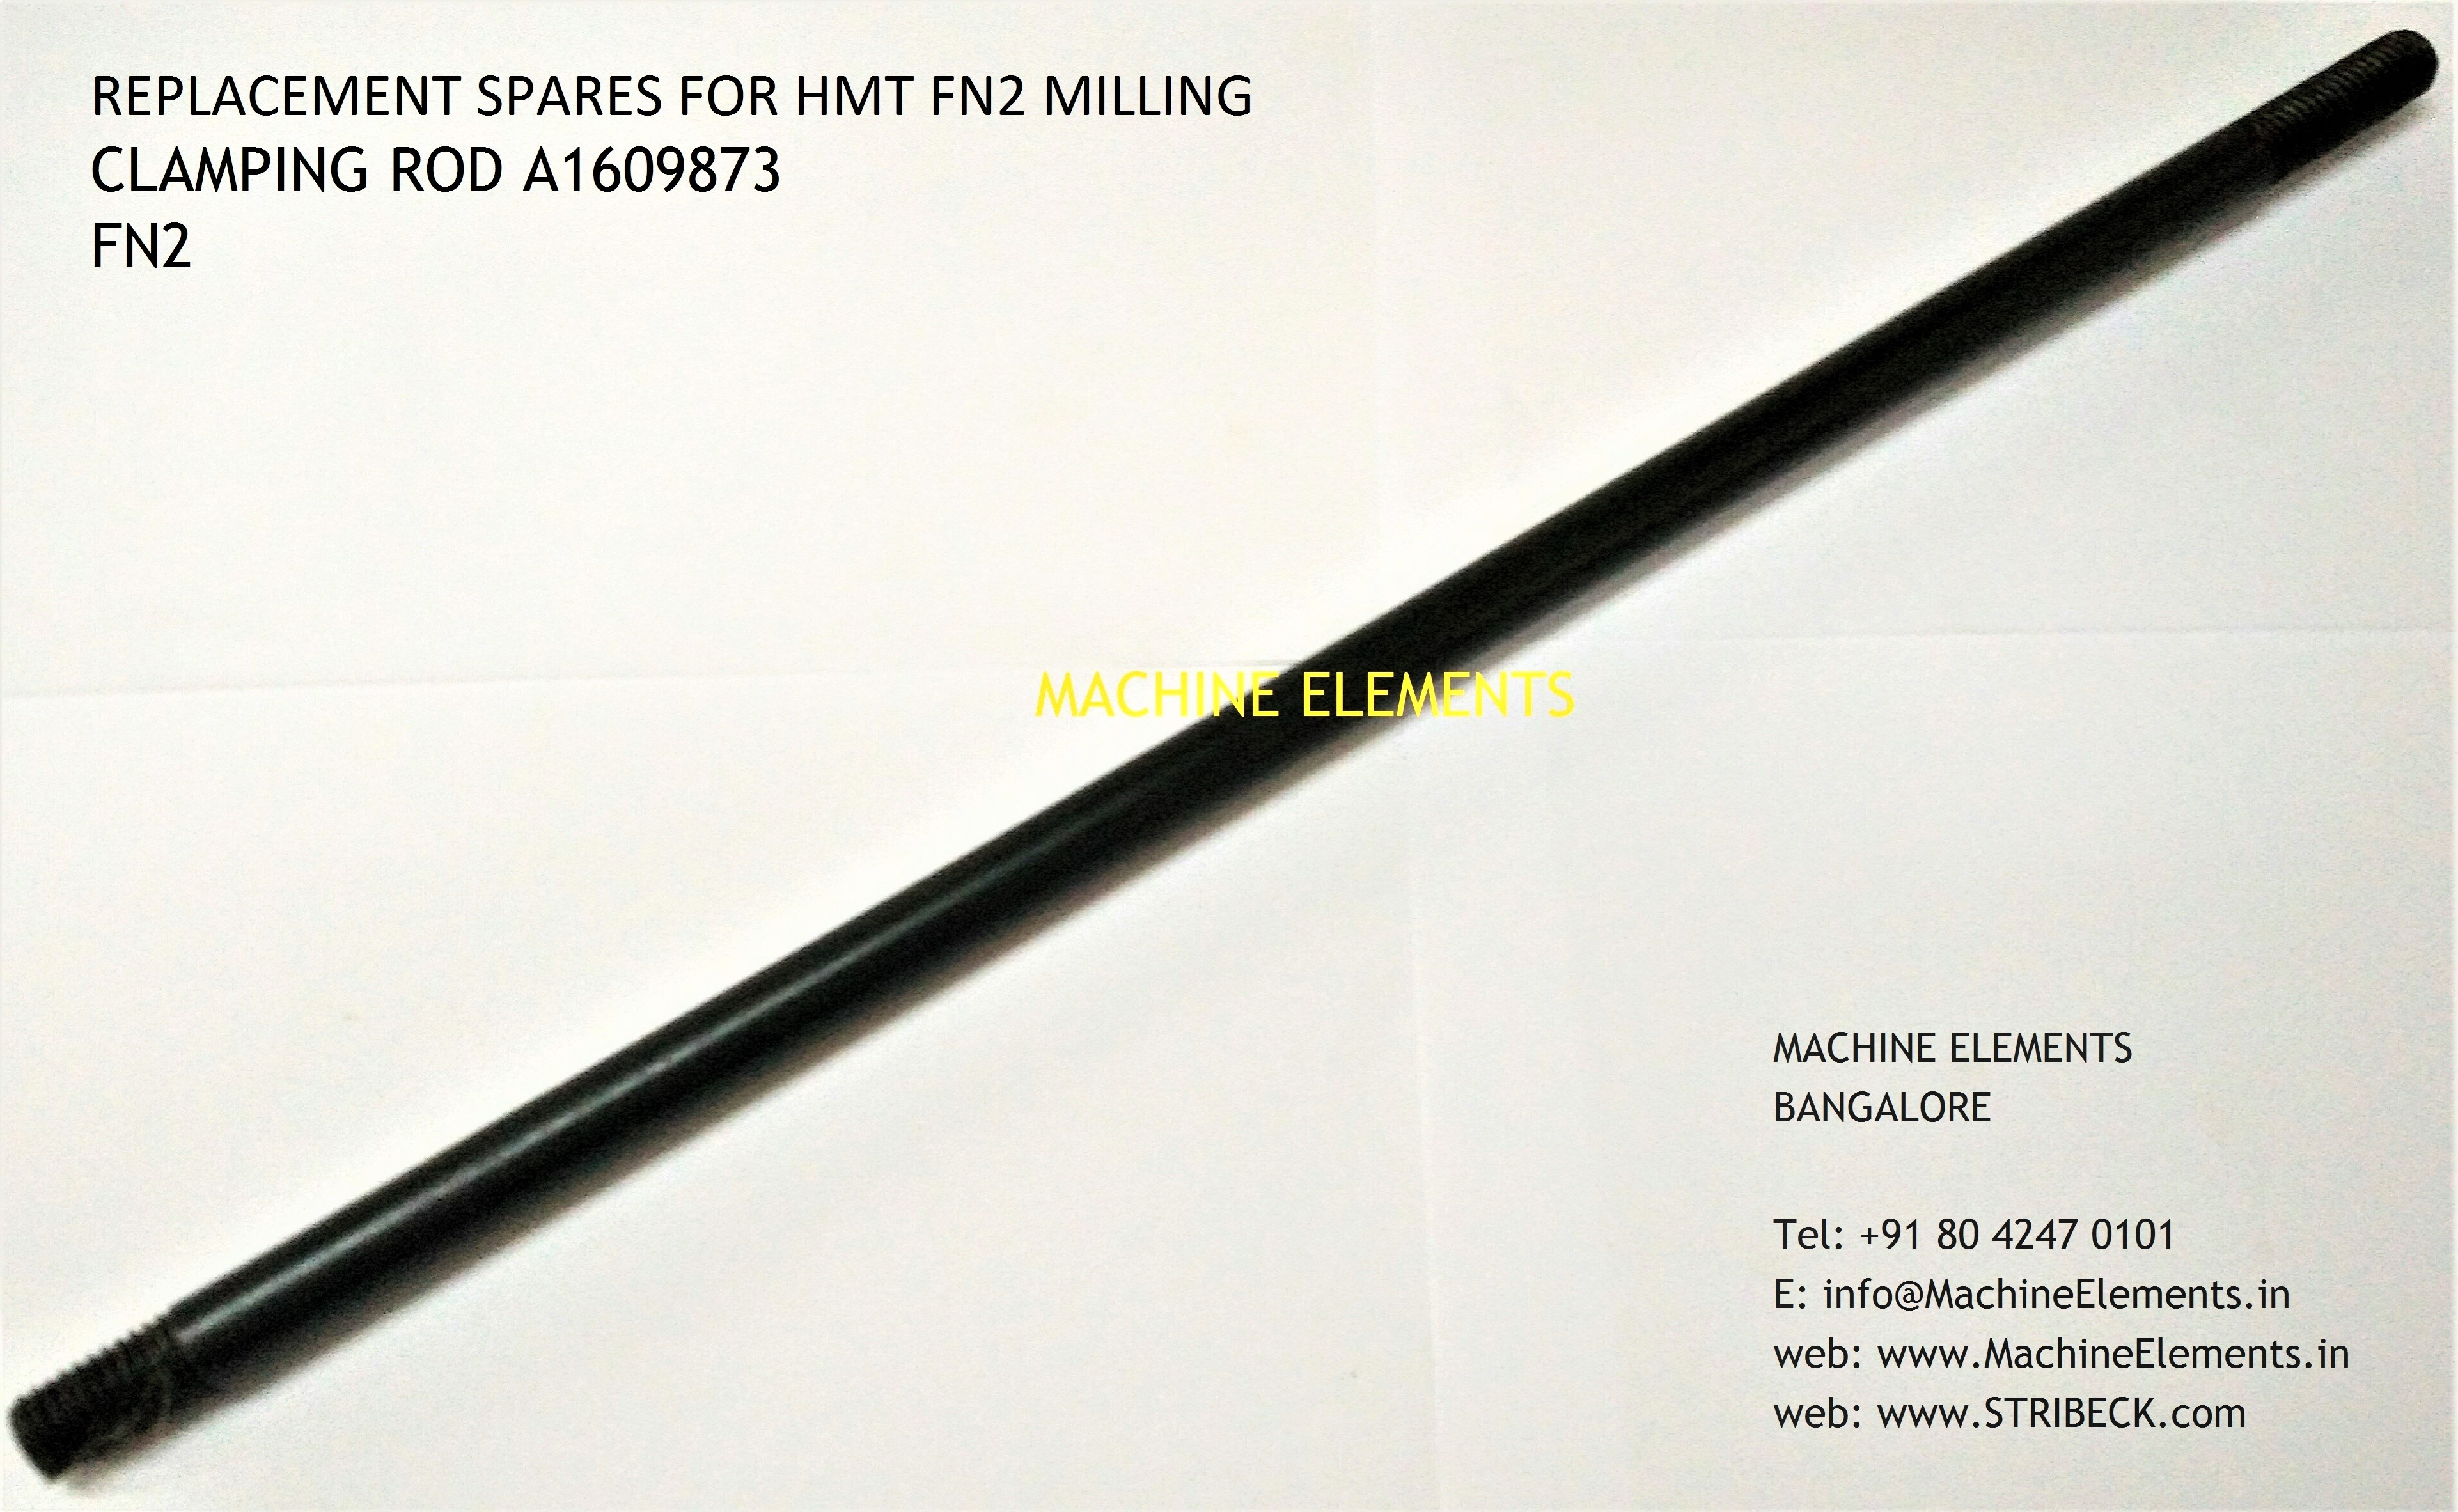 CLAMPING ROD A1609873